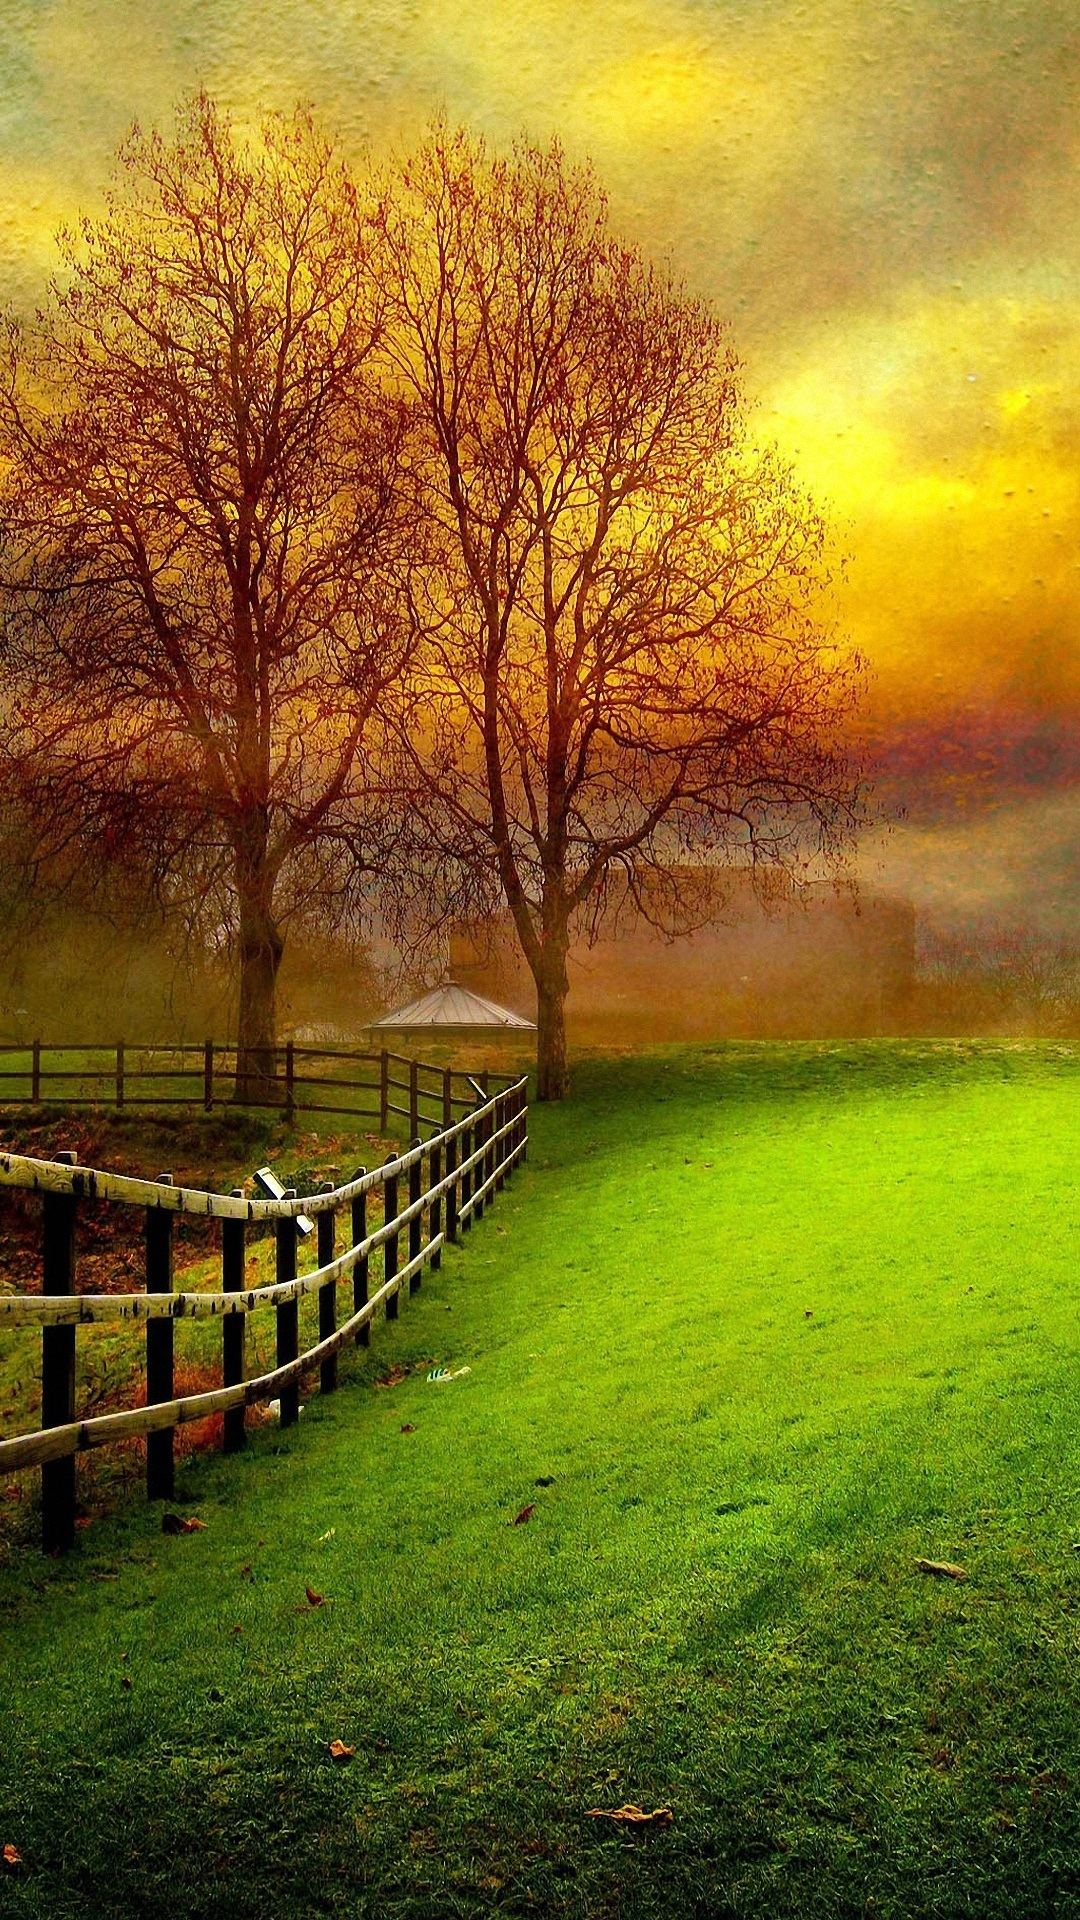 Download Hd Nature Wallpaper For Android Phone Gallery